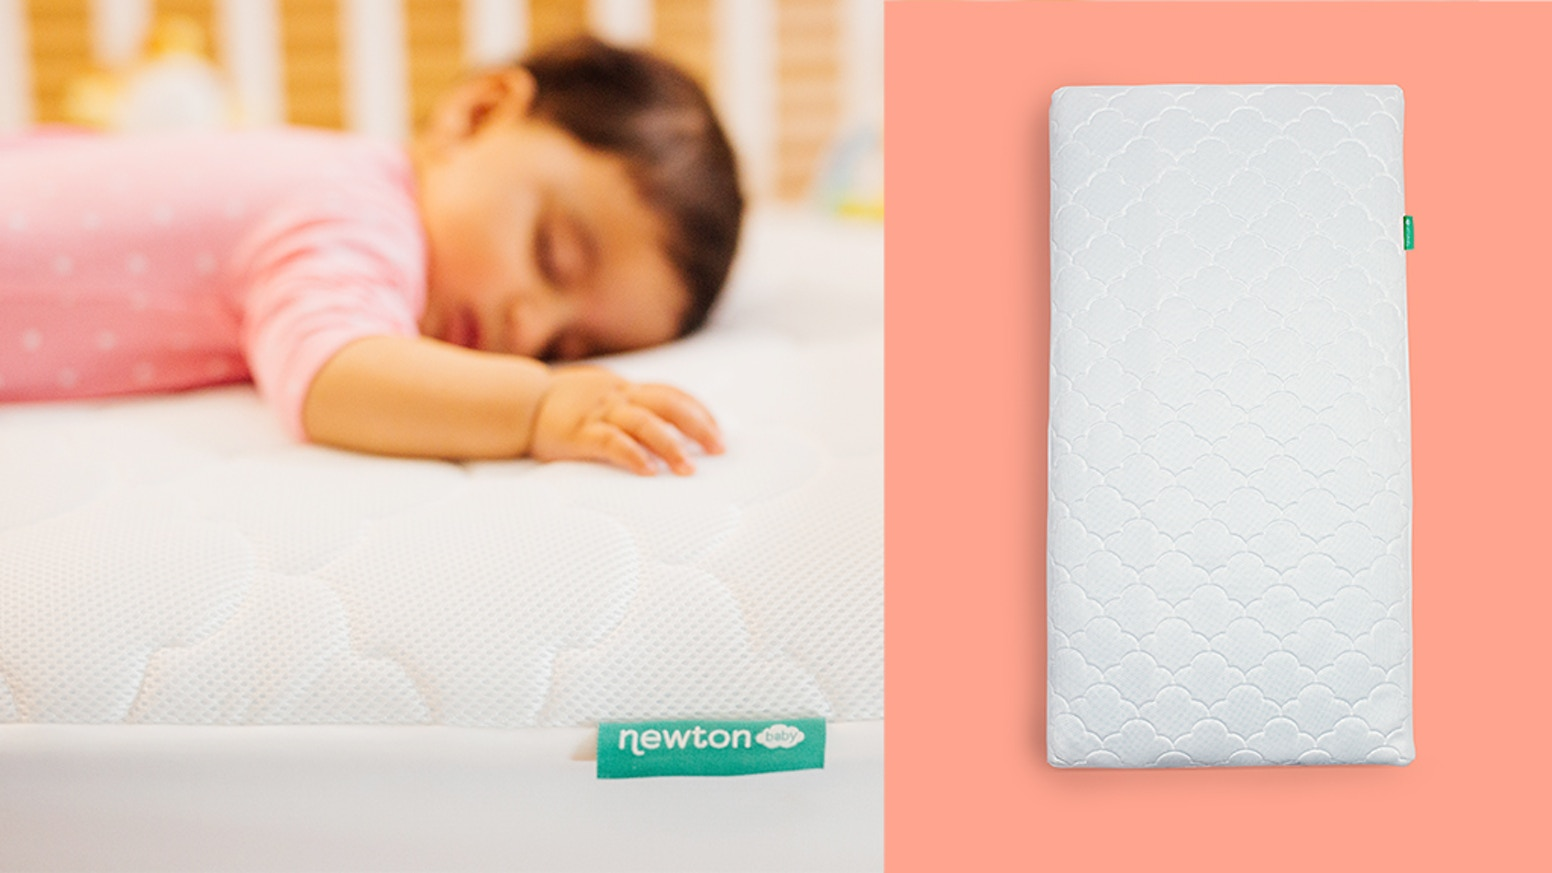 the crib mattress pad, reinventednewton babynewton baby